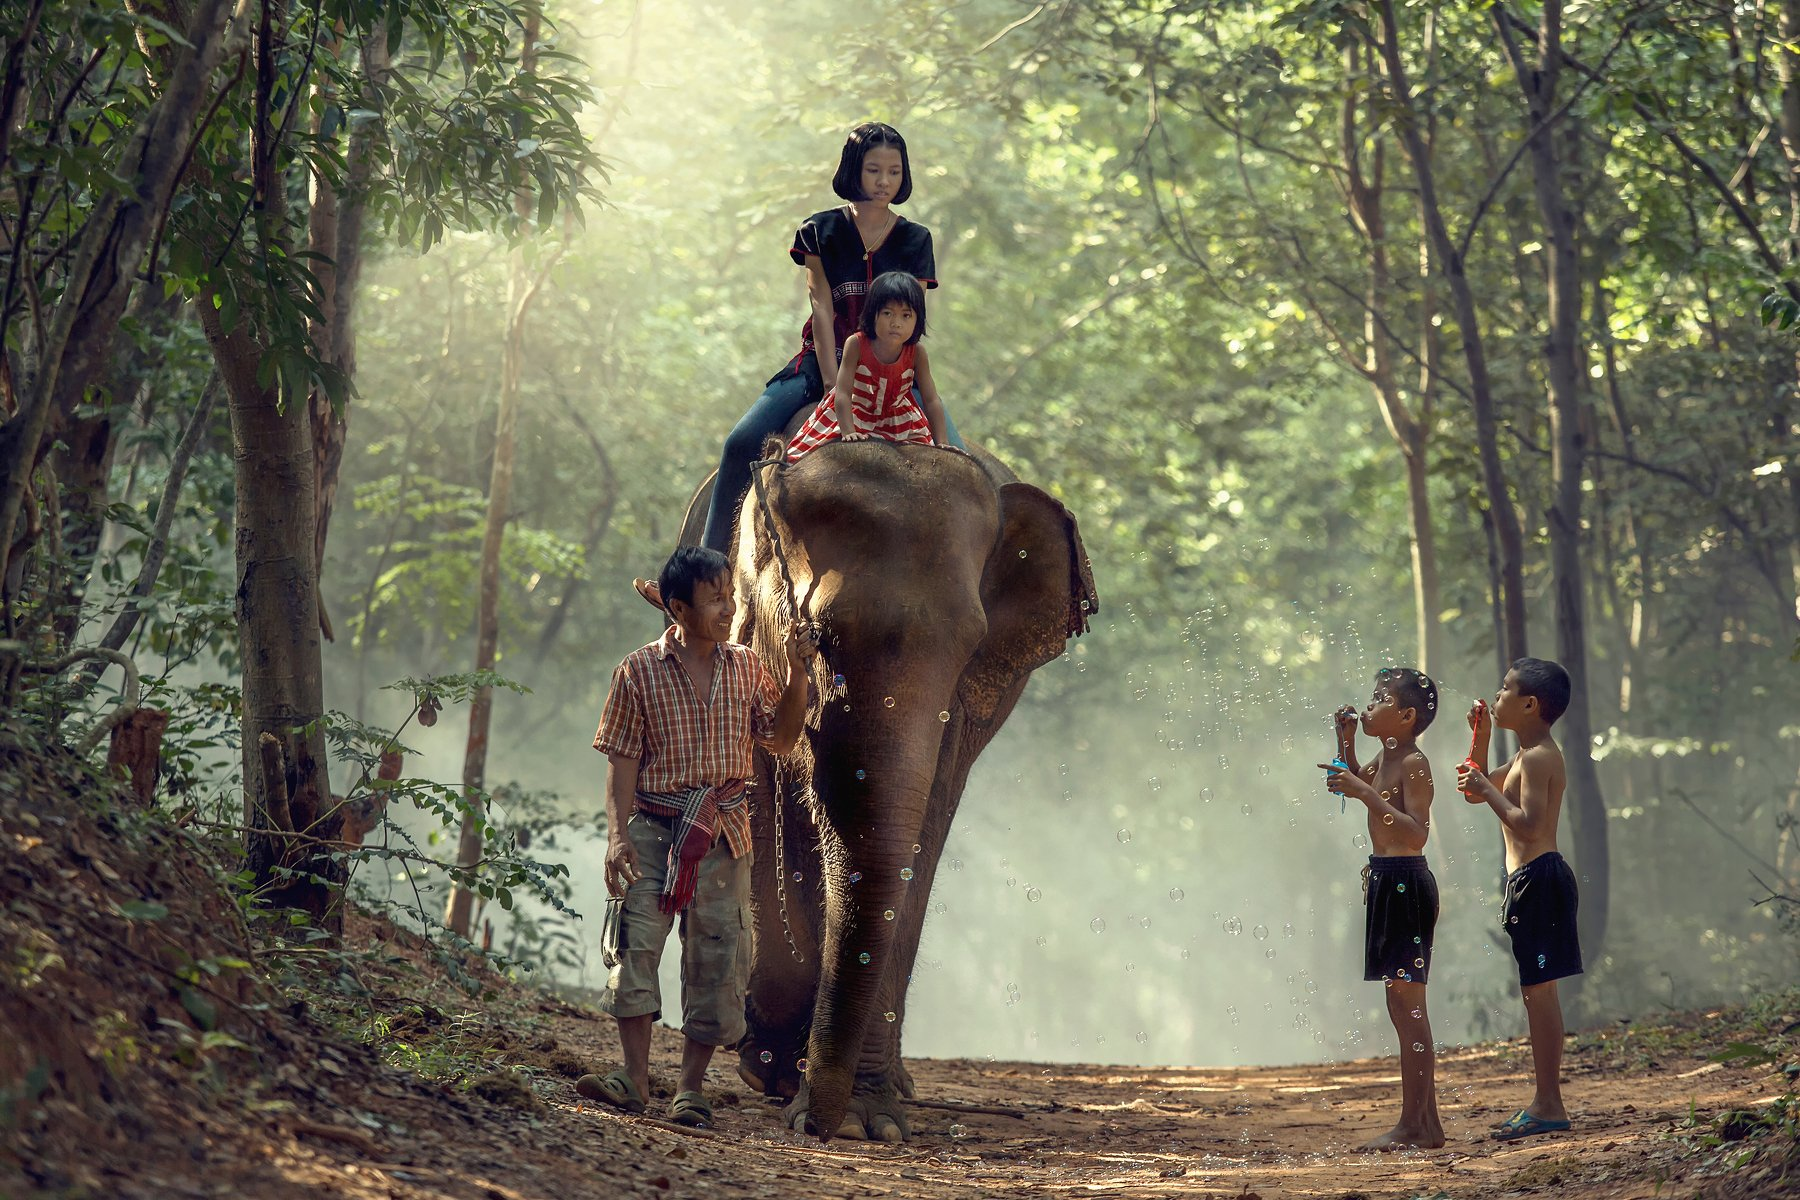 elephant,family,children,girl,boy,life,asia,people,, SUTIPORN SOMNAM